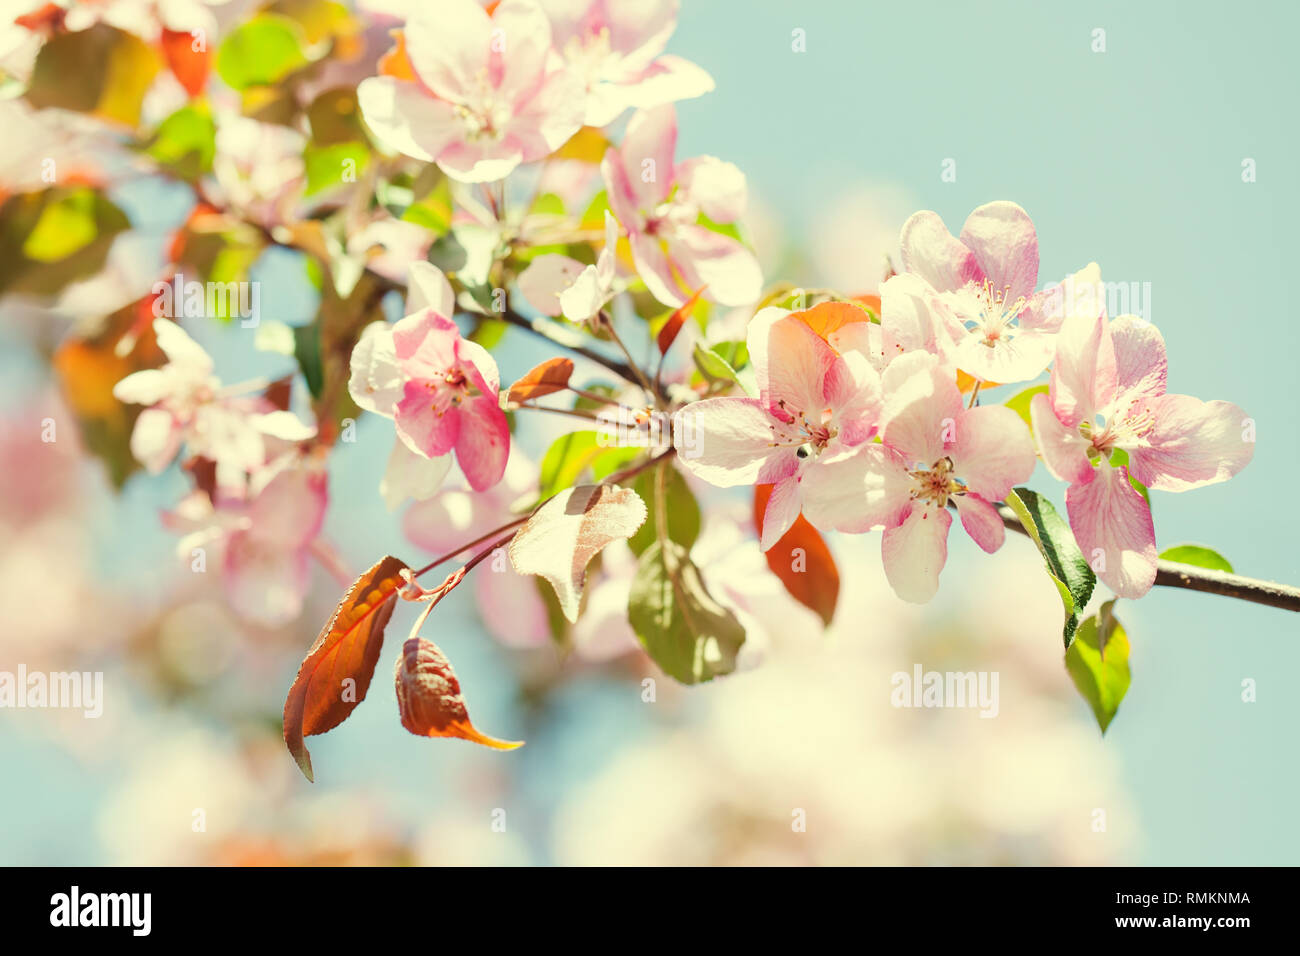 Spring Season Warm Sunny Floral Wallpaper Fruit Tree Branch With